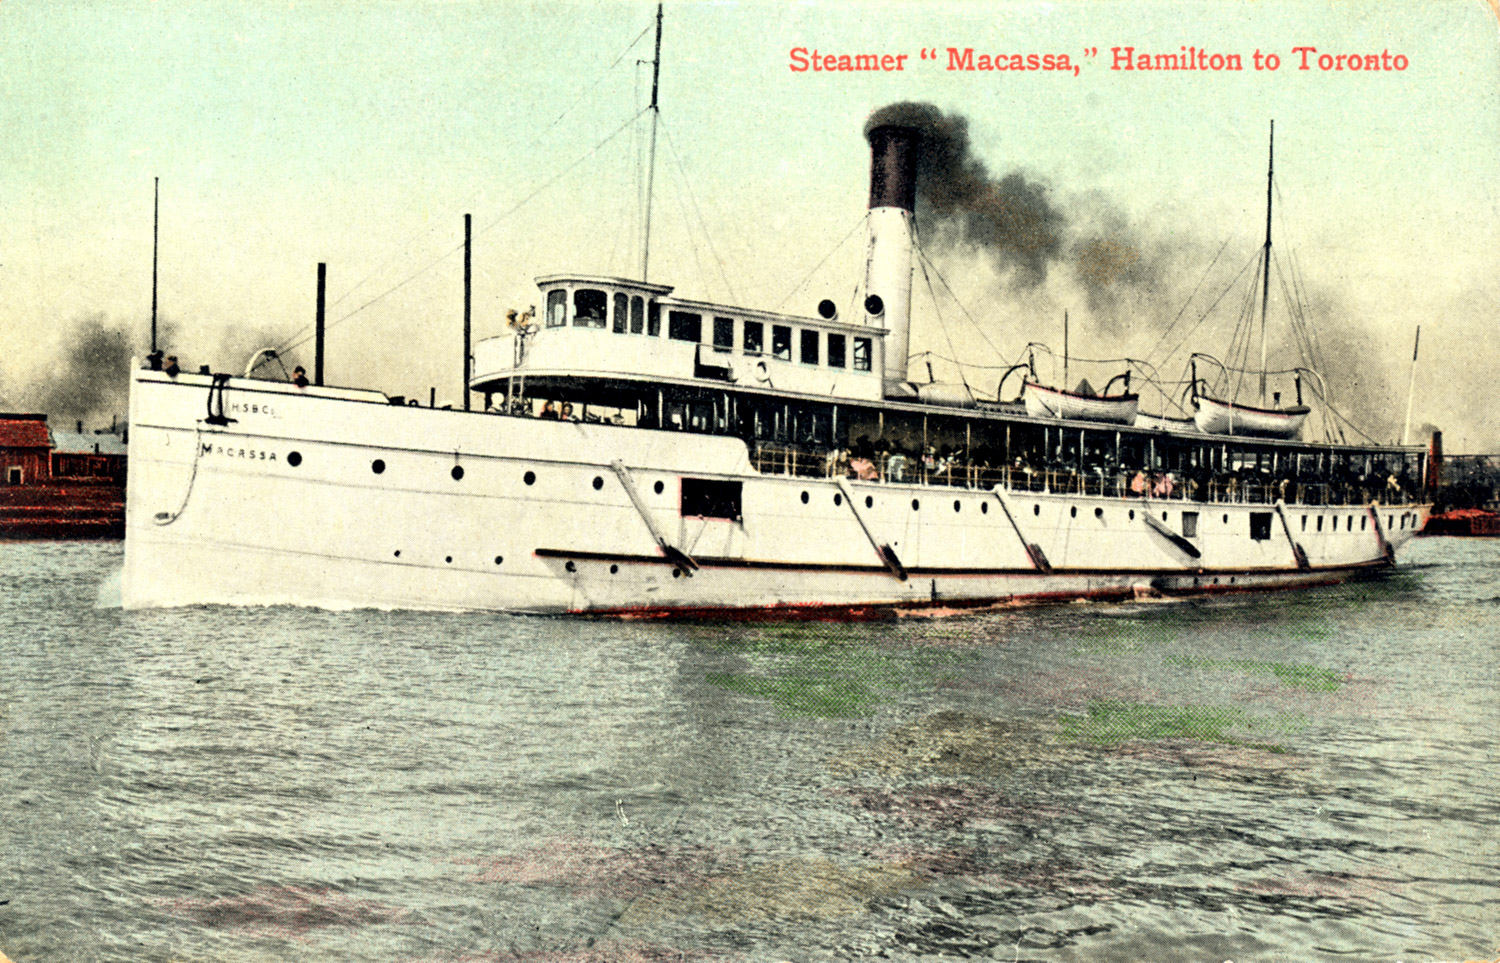 The steel-hulled MANASOO, when it was named the MACASSA for the first 39 years of its 40-year life, plied Lake Ontario waters carrying excursionists and cargoes between the cities of Toronto and Hamilton.